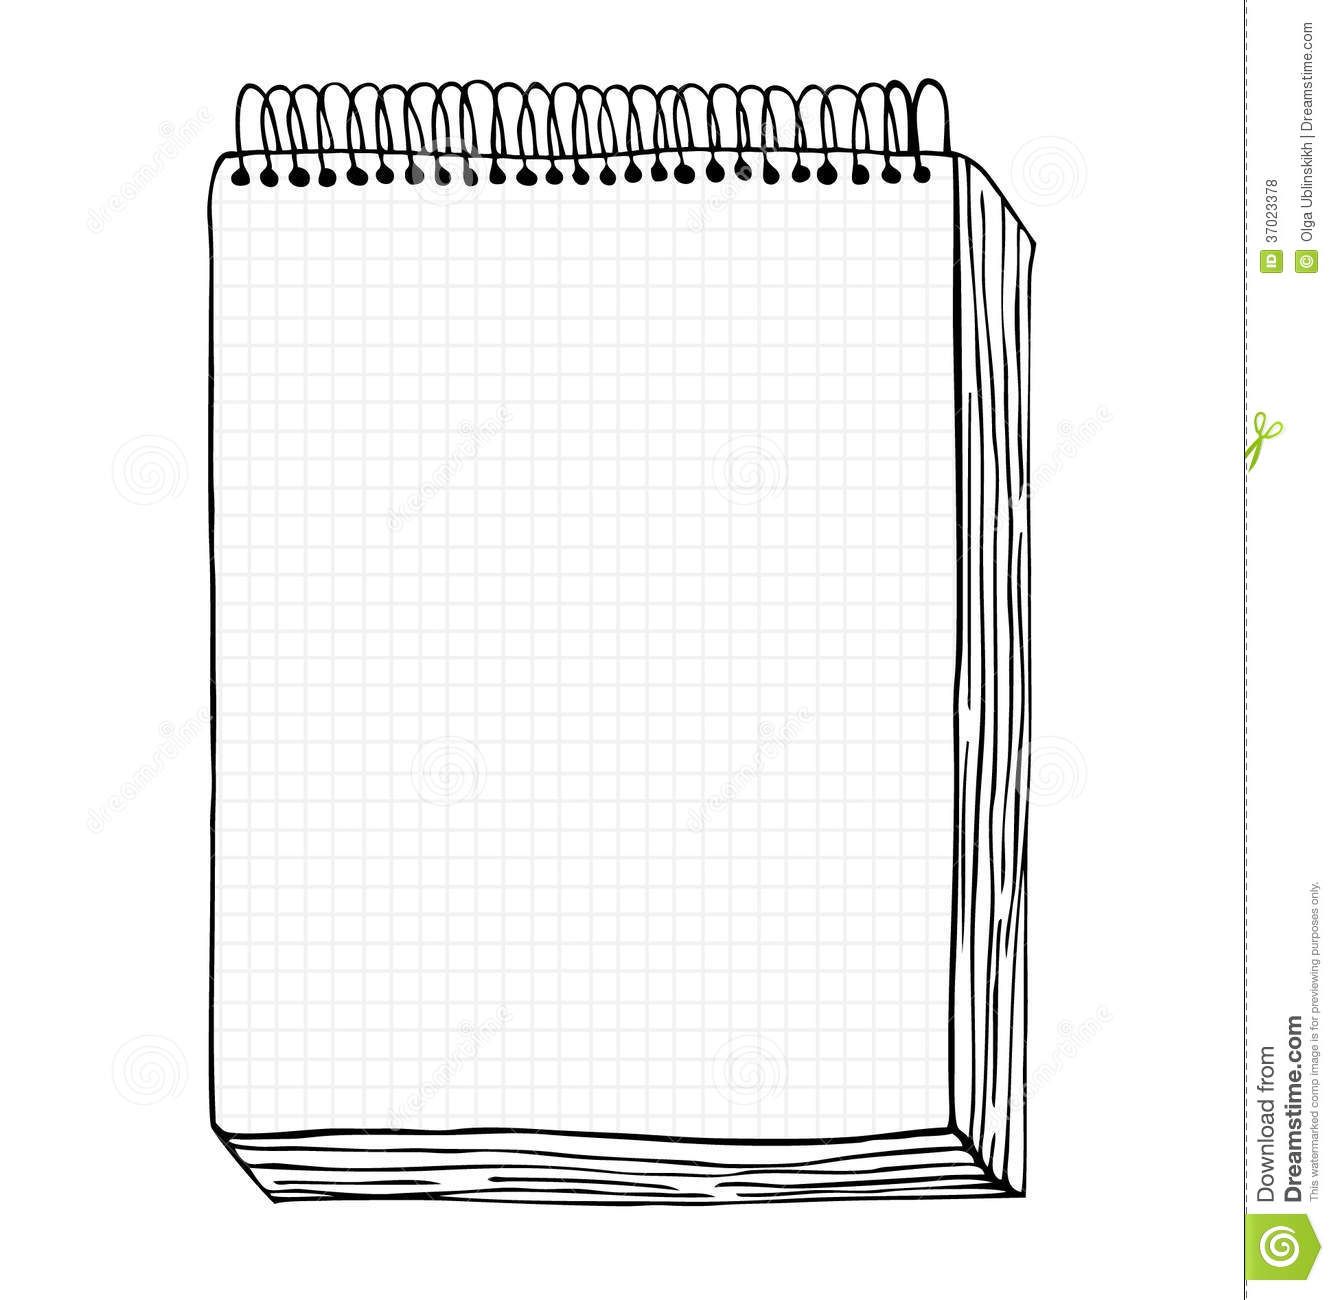 Feuille De Papier Lignée Sketch Of Notebook Vector Illustration With Hand Drawn